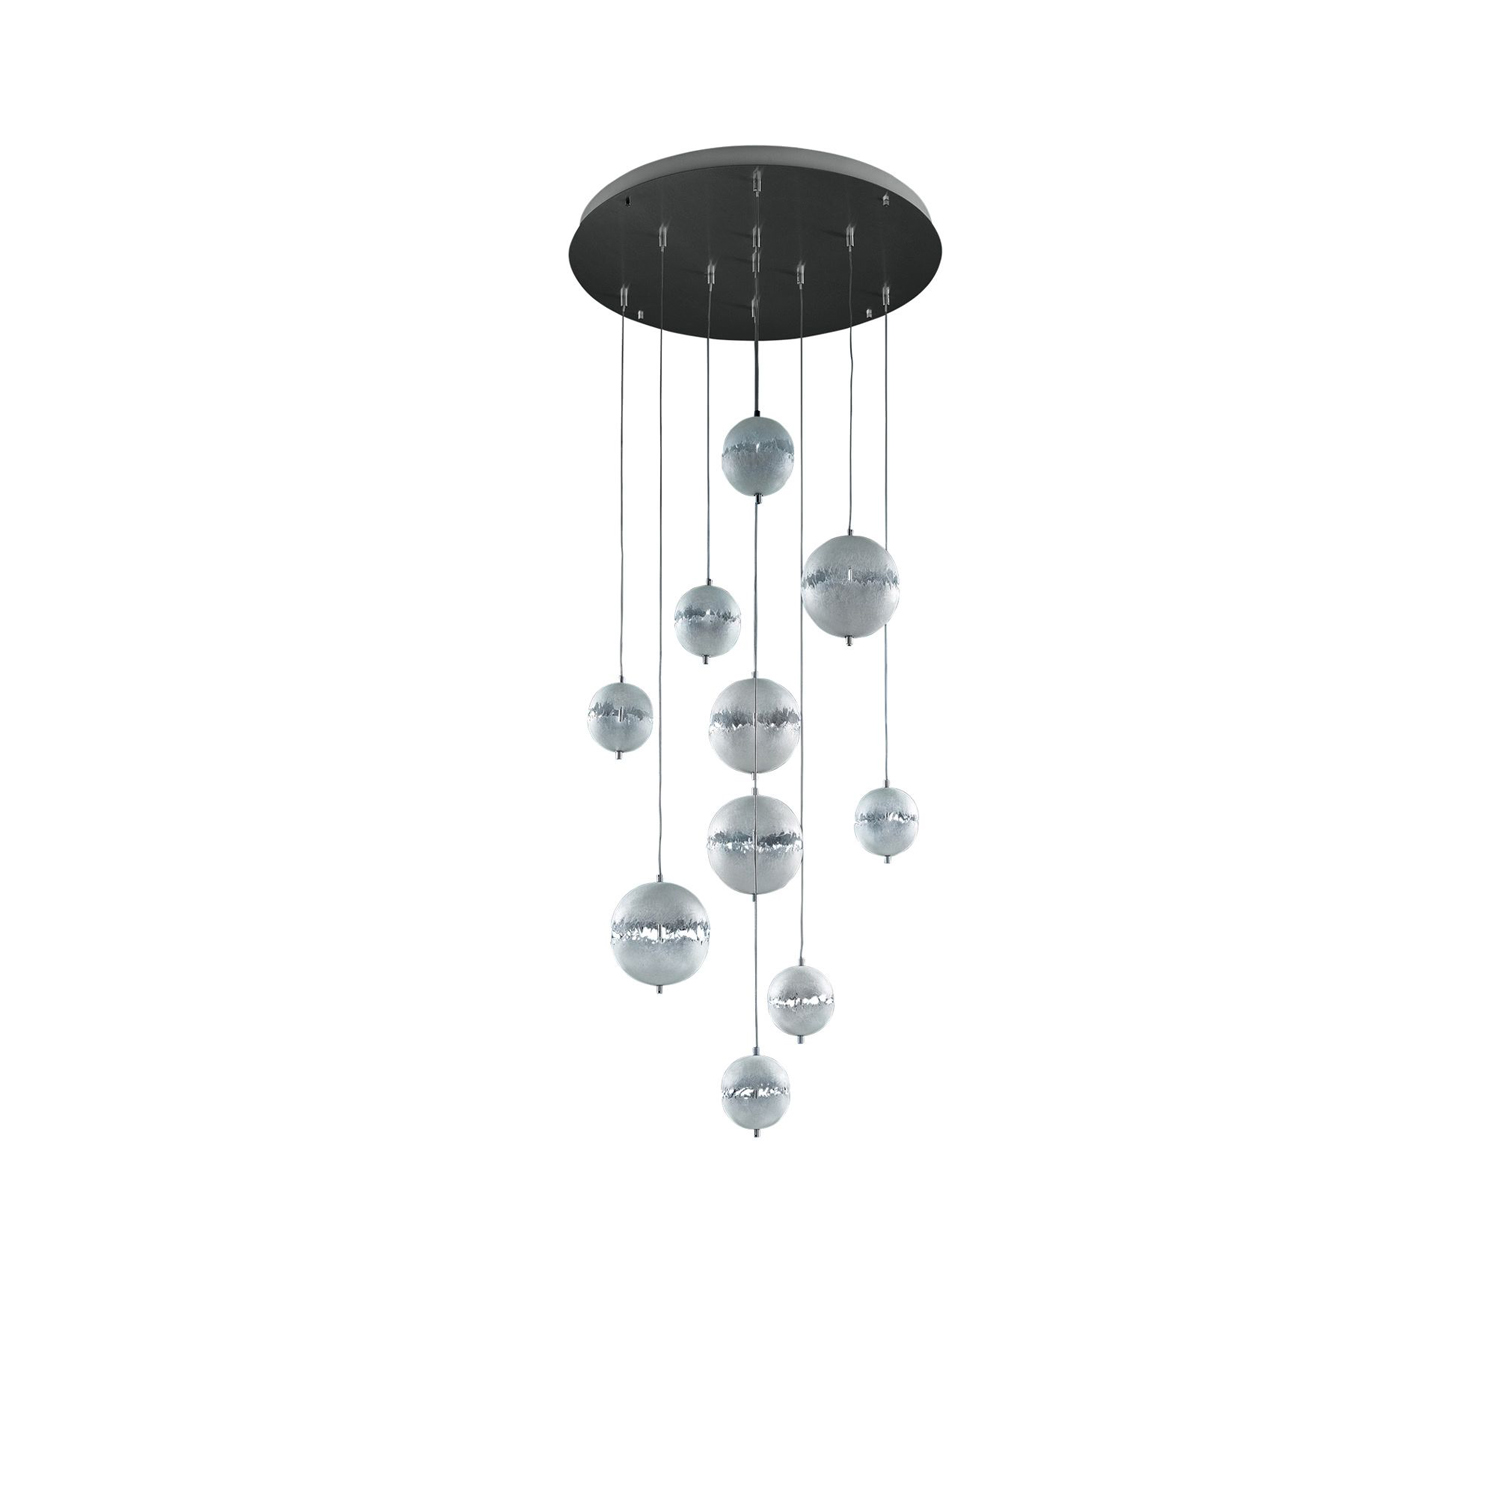 PostKrisi Chandelier - With PostKrisi Enzo Catellani began working and moulding fibreglass. This material fascinated him due to its incredible versatility and strength, but above all for the shadows it casts when it interacts with light.  Dimensions Varies Plese Enquire  | Matter of Stuff